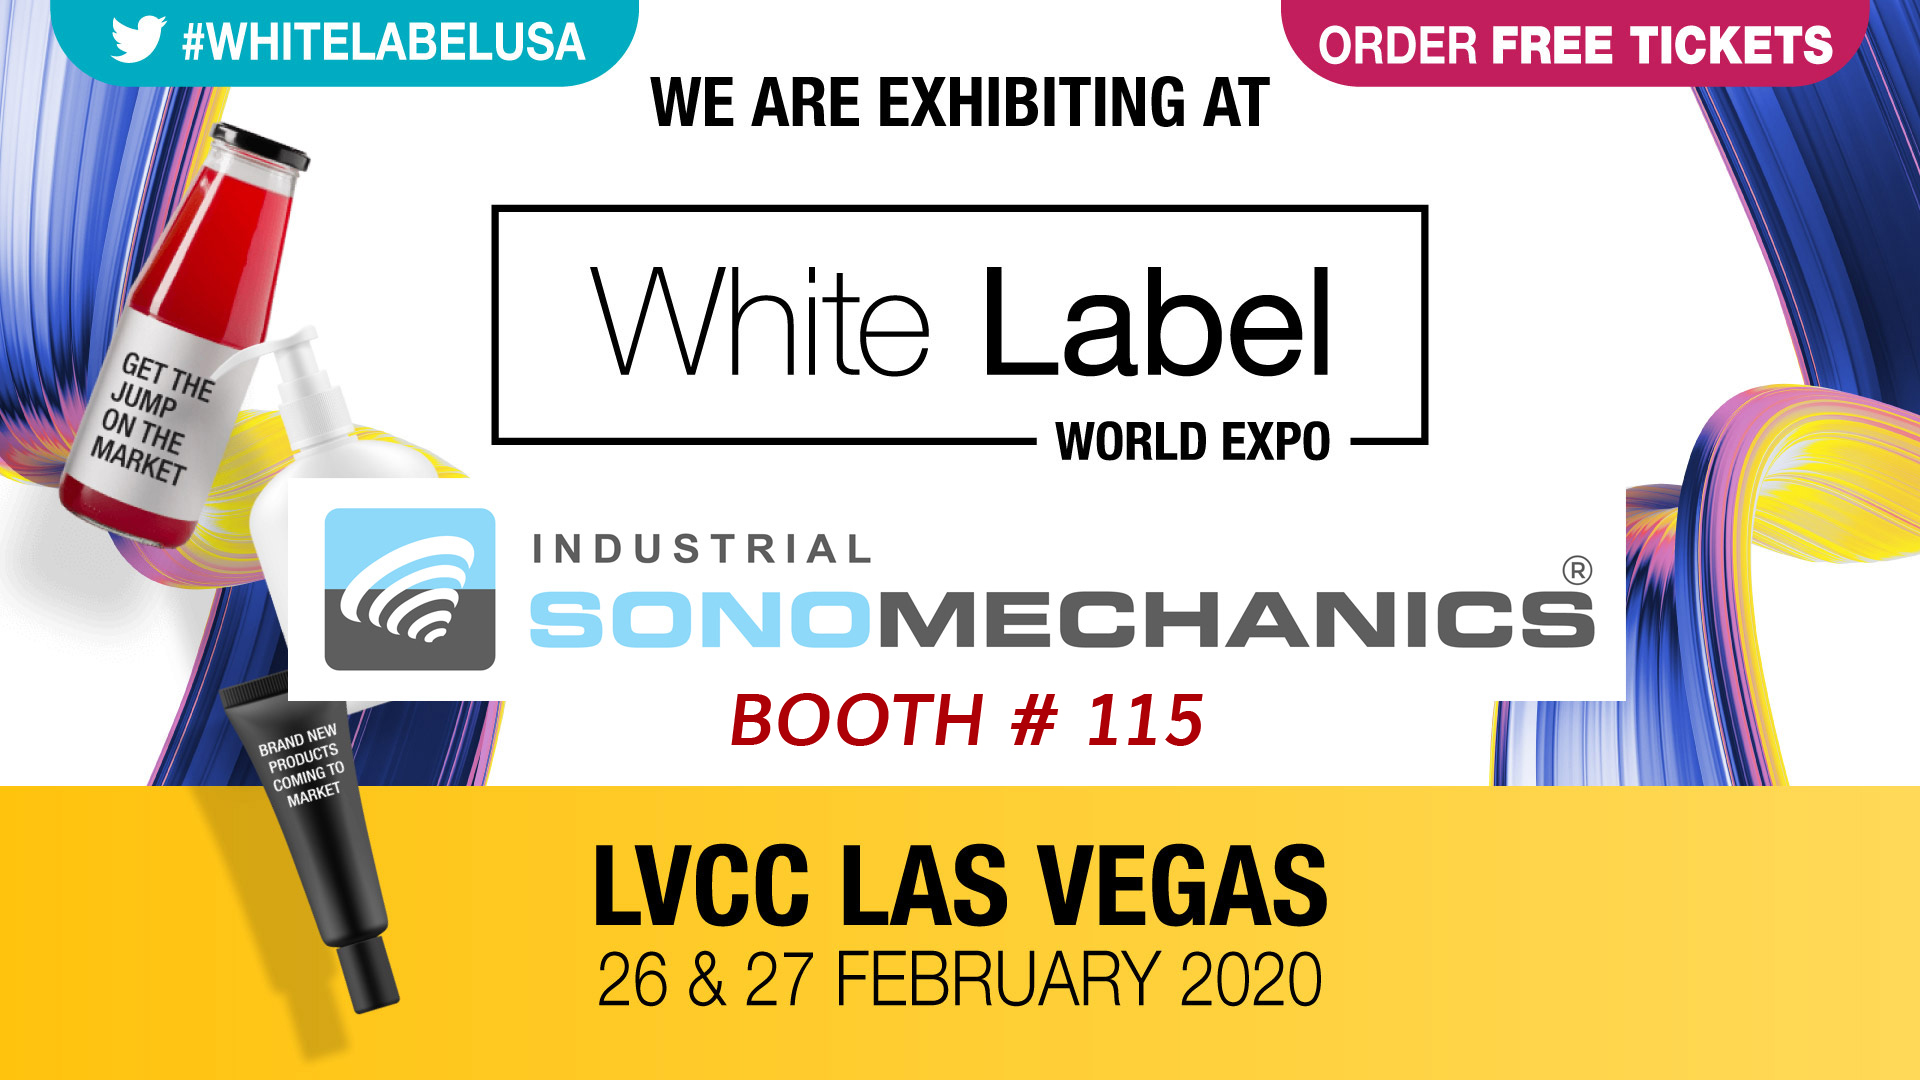 Industrial Sonomechanics' booth 115 at the White Label Expo in Las Vegas